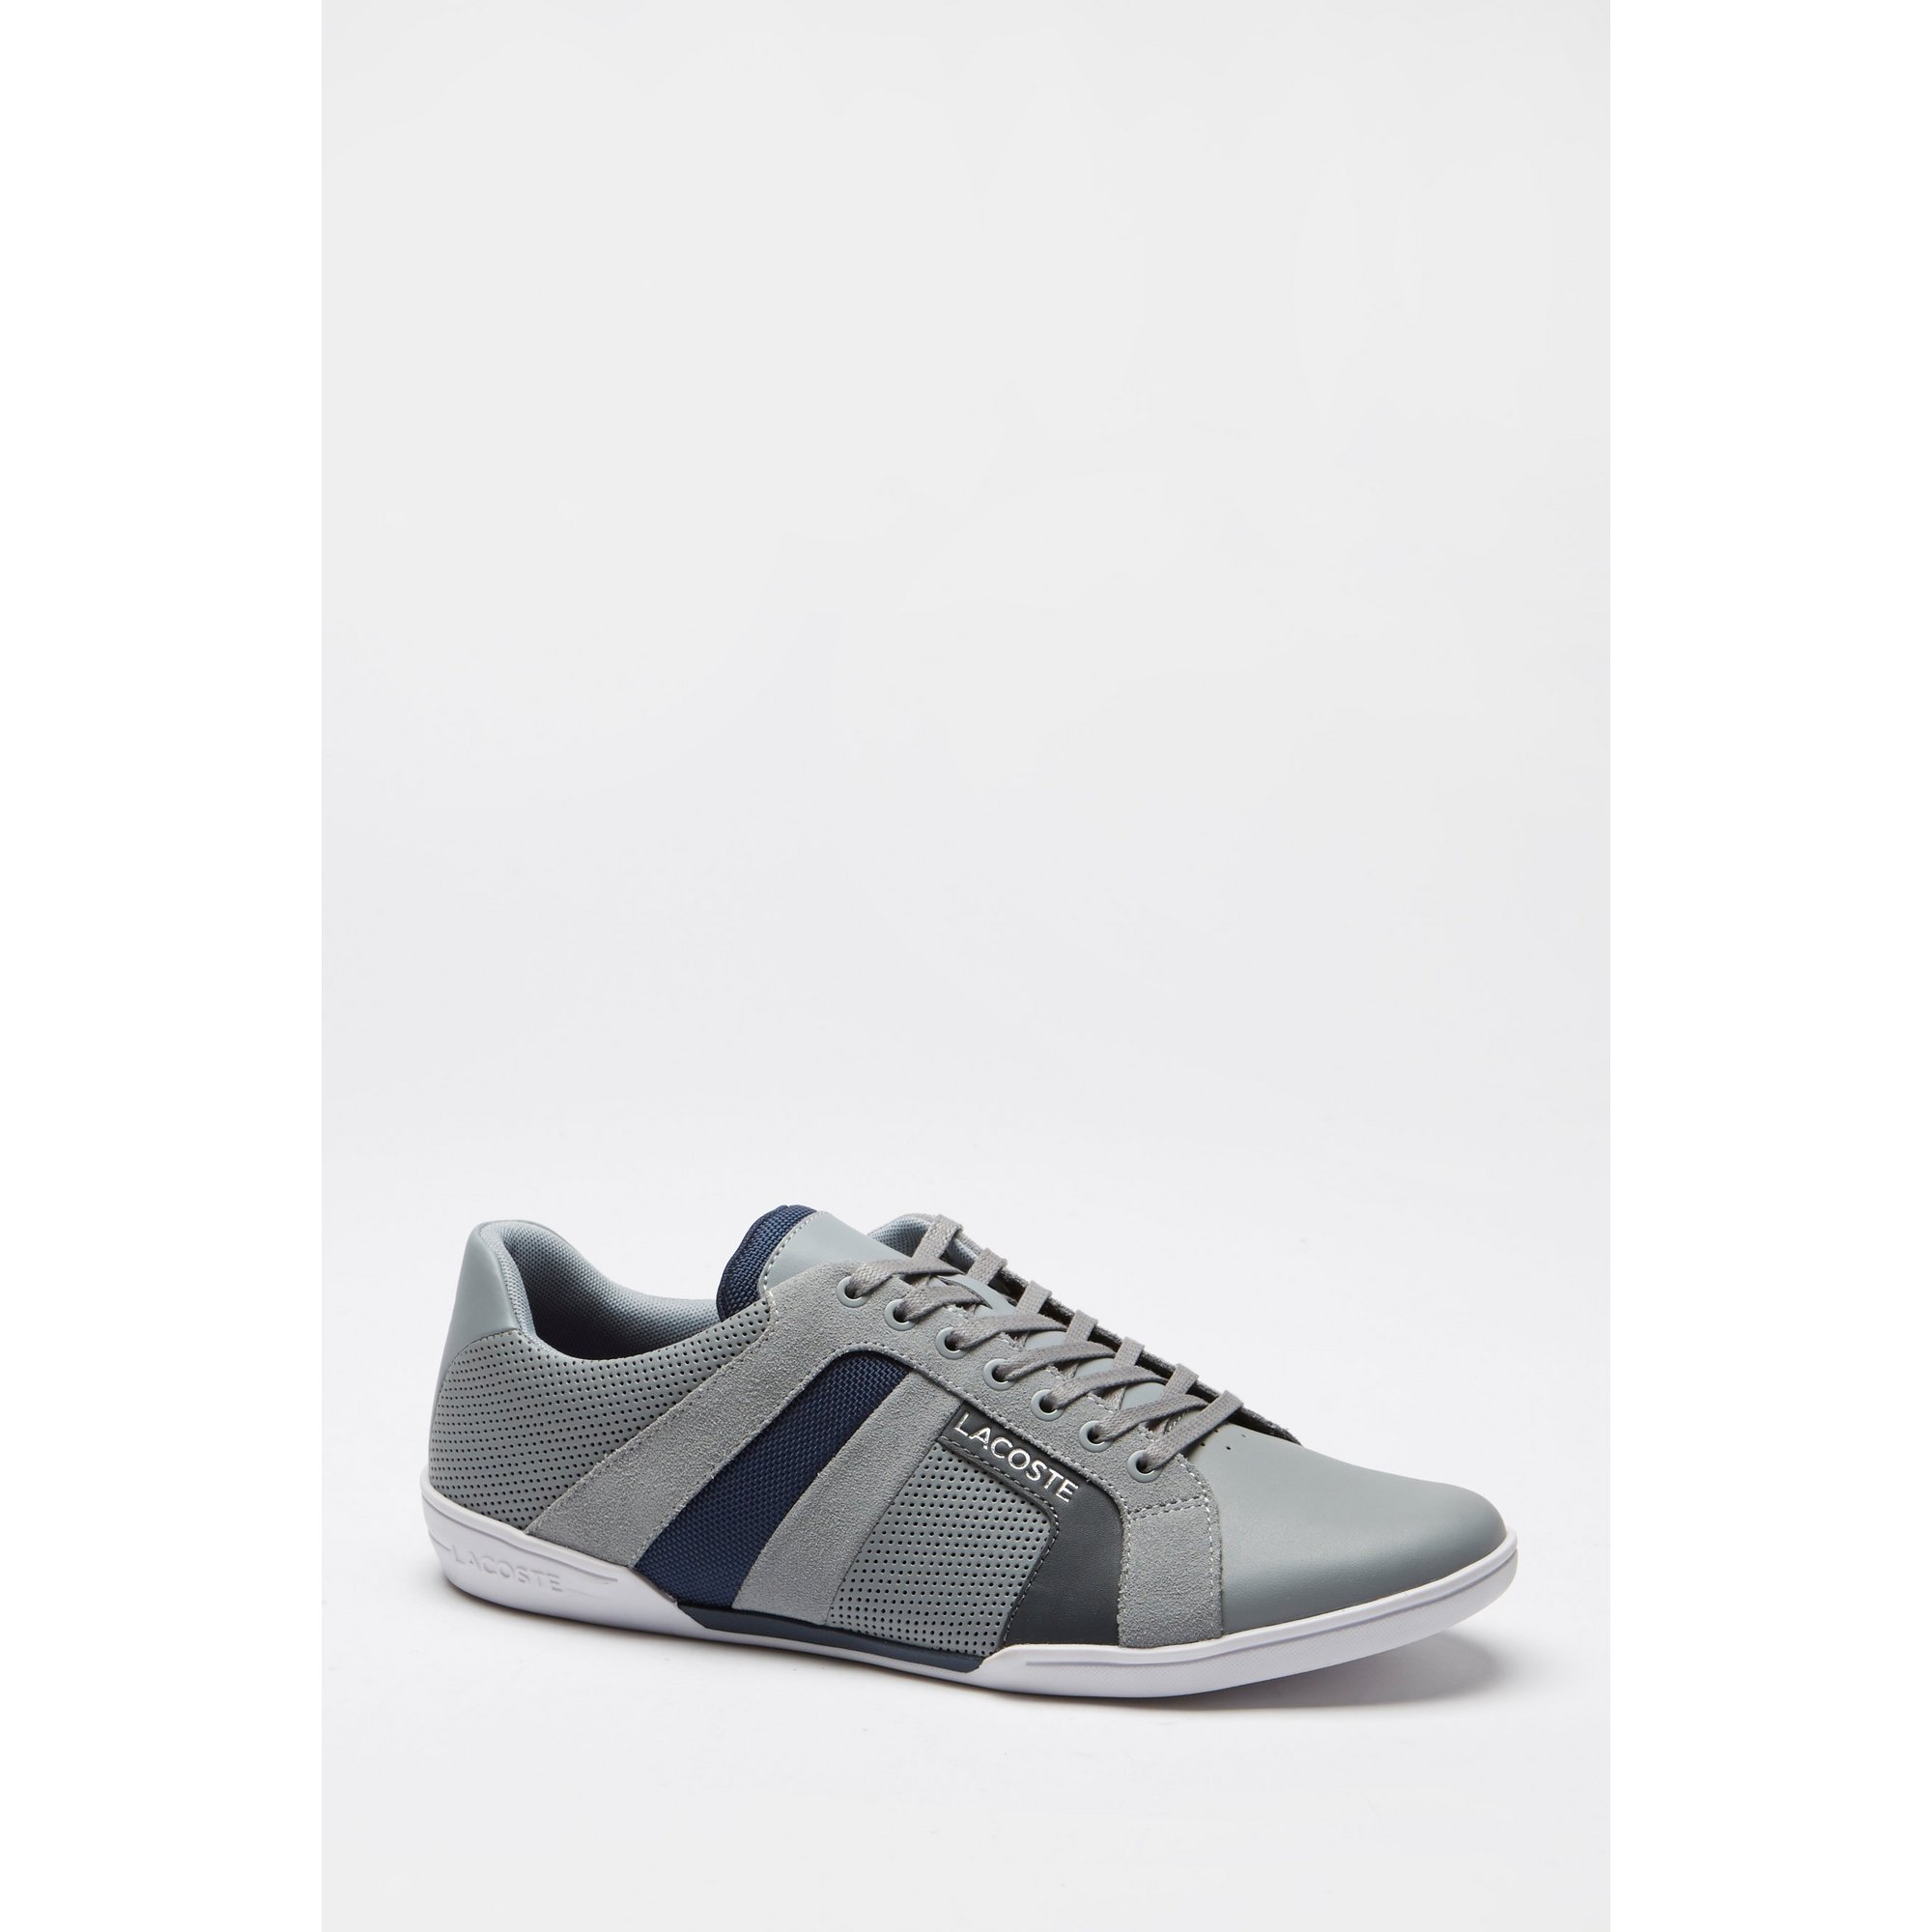 Image of Lacoste Chaymon Trainers